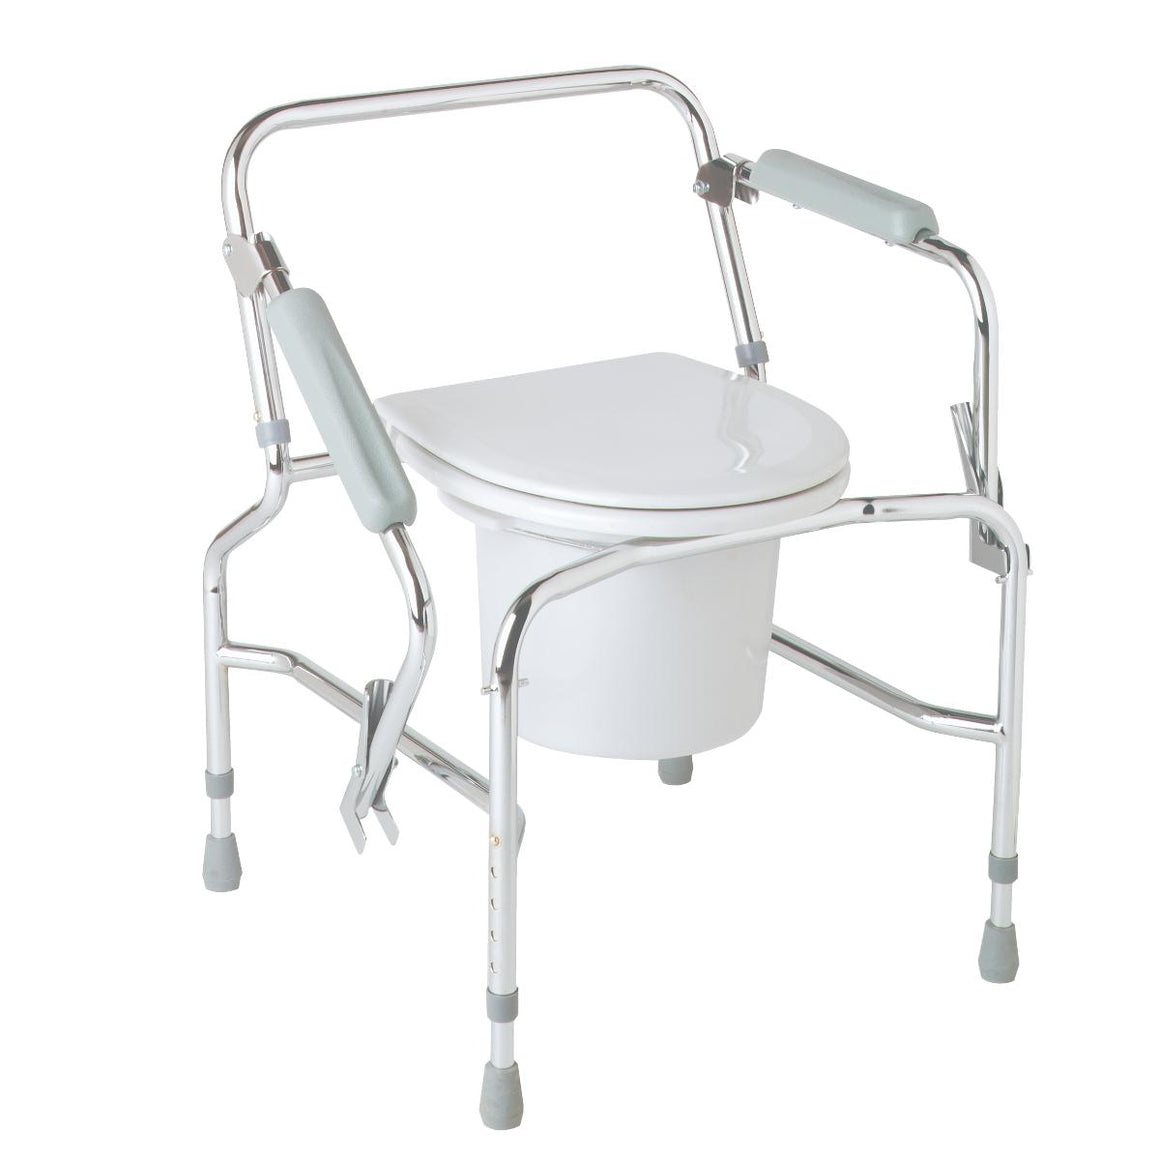 Steel Drop-Arm Commode, Each